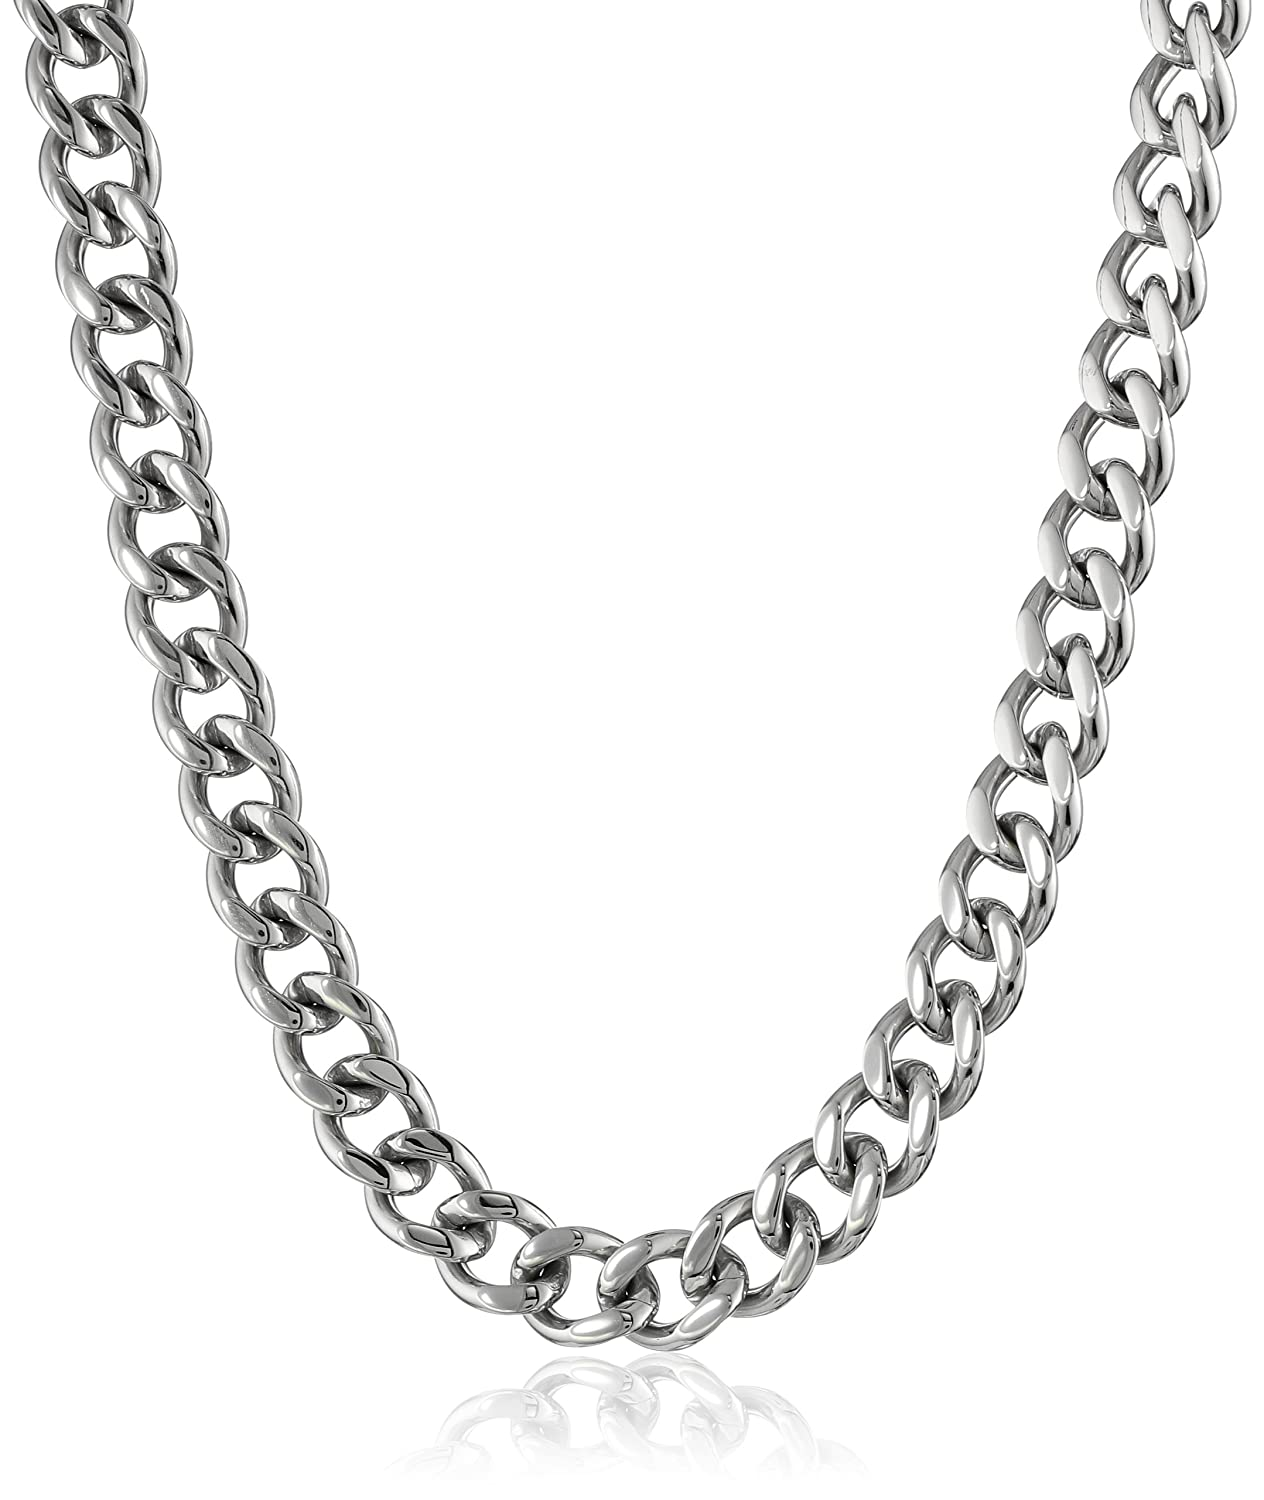 cm images ycl necklace mechanic silver steel style chain stainless mens jewelry chains search